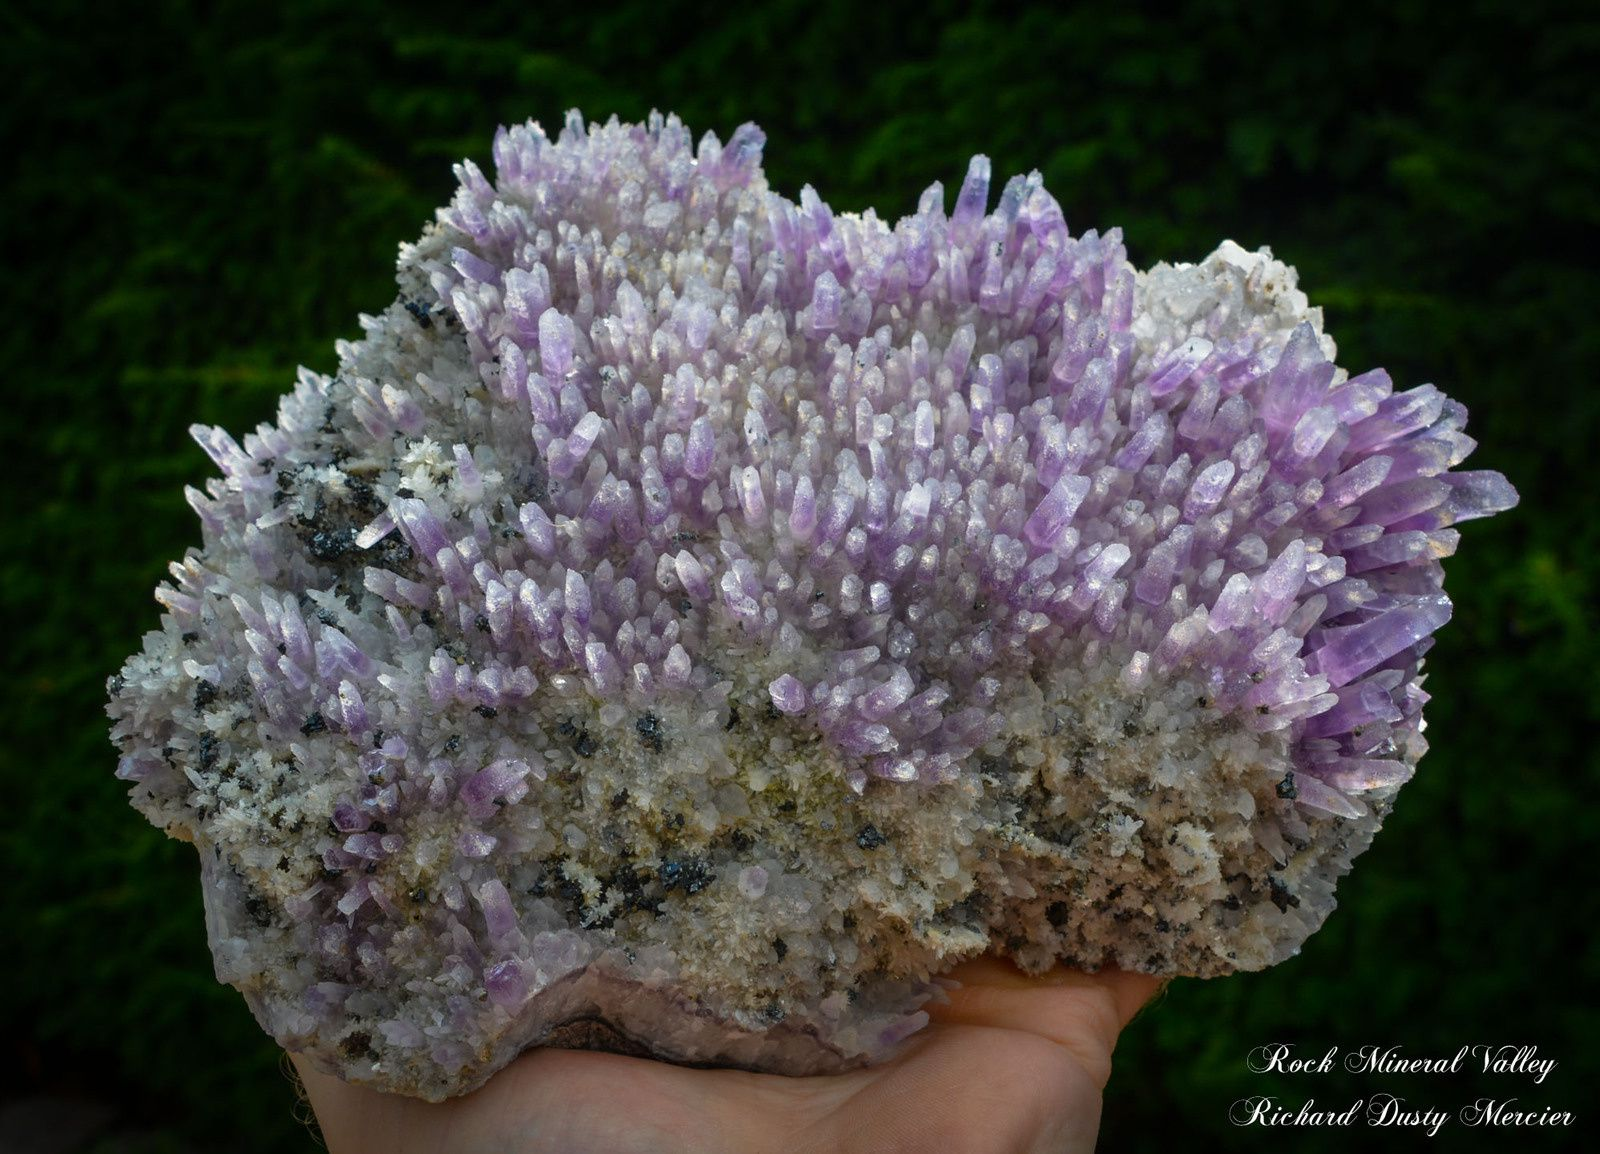 Amethyst with Pyrite and Galene from Chala mine, Bulgaria